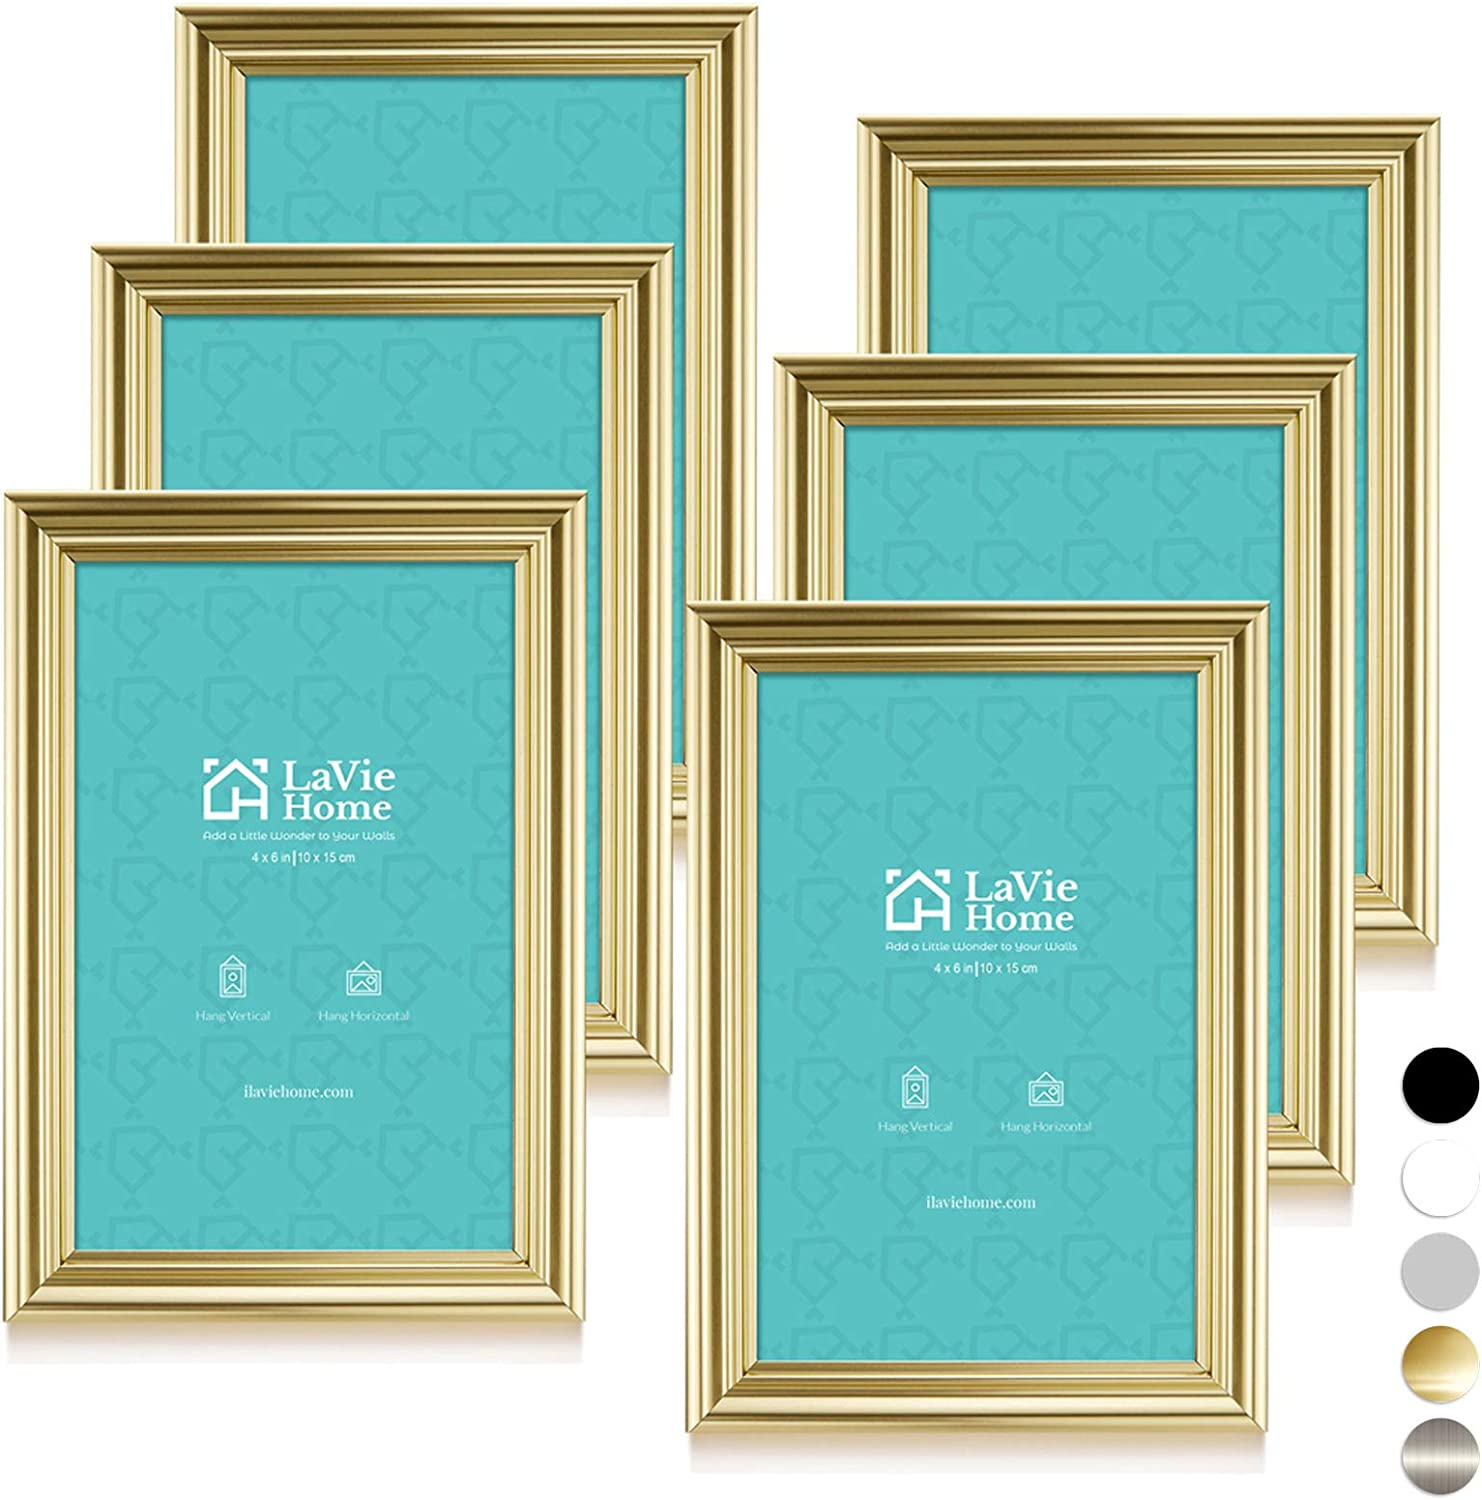 LaVie Home 4x6 Picture Frames(6 Pack, Gold) Single Photo Frame with High Definition Glass for Wall Mount & Table Top Display